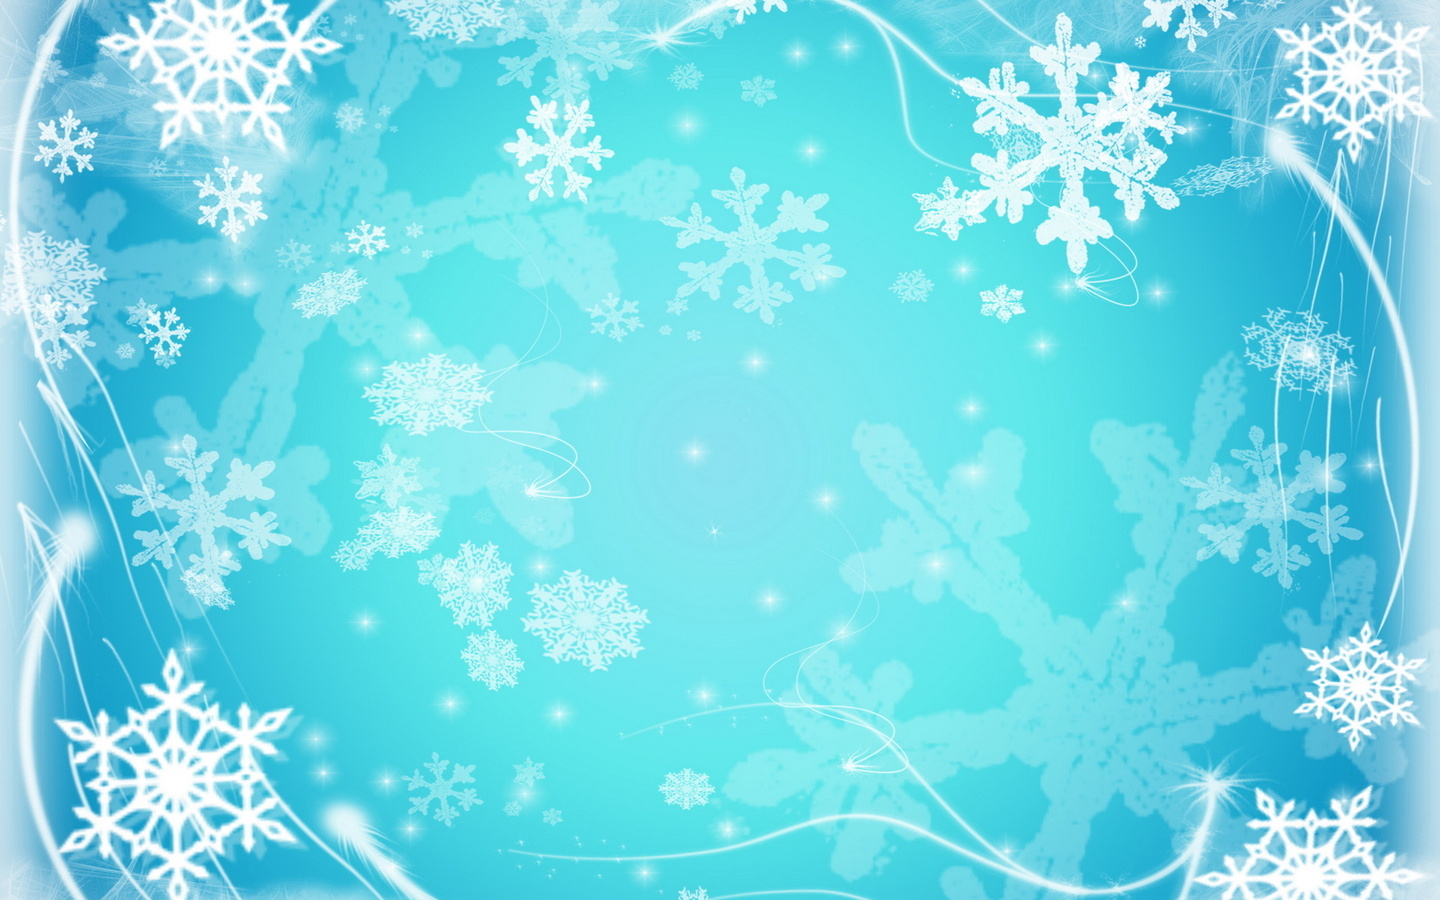 30 Ice Texture Backgrounds for Web Designers Tech Lovers l Web 1440x900